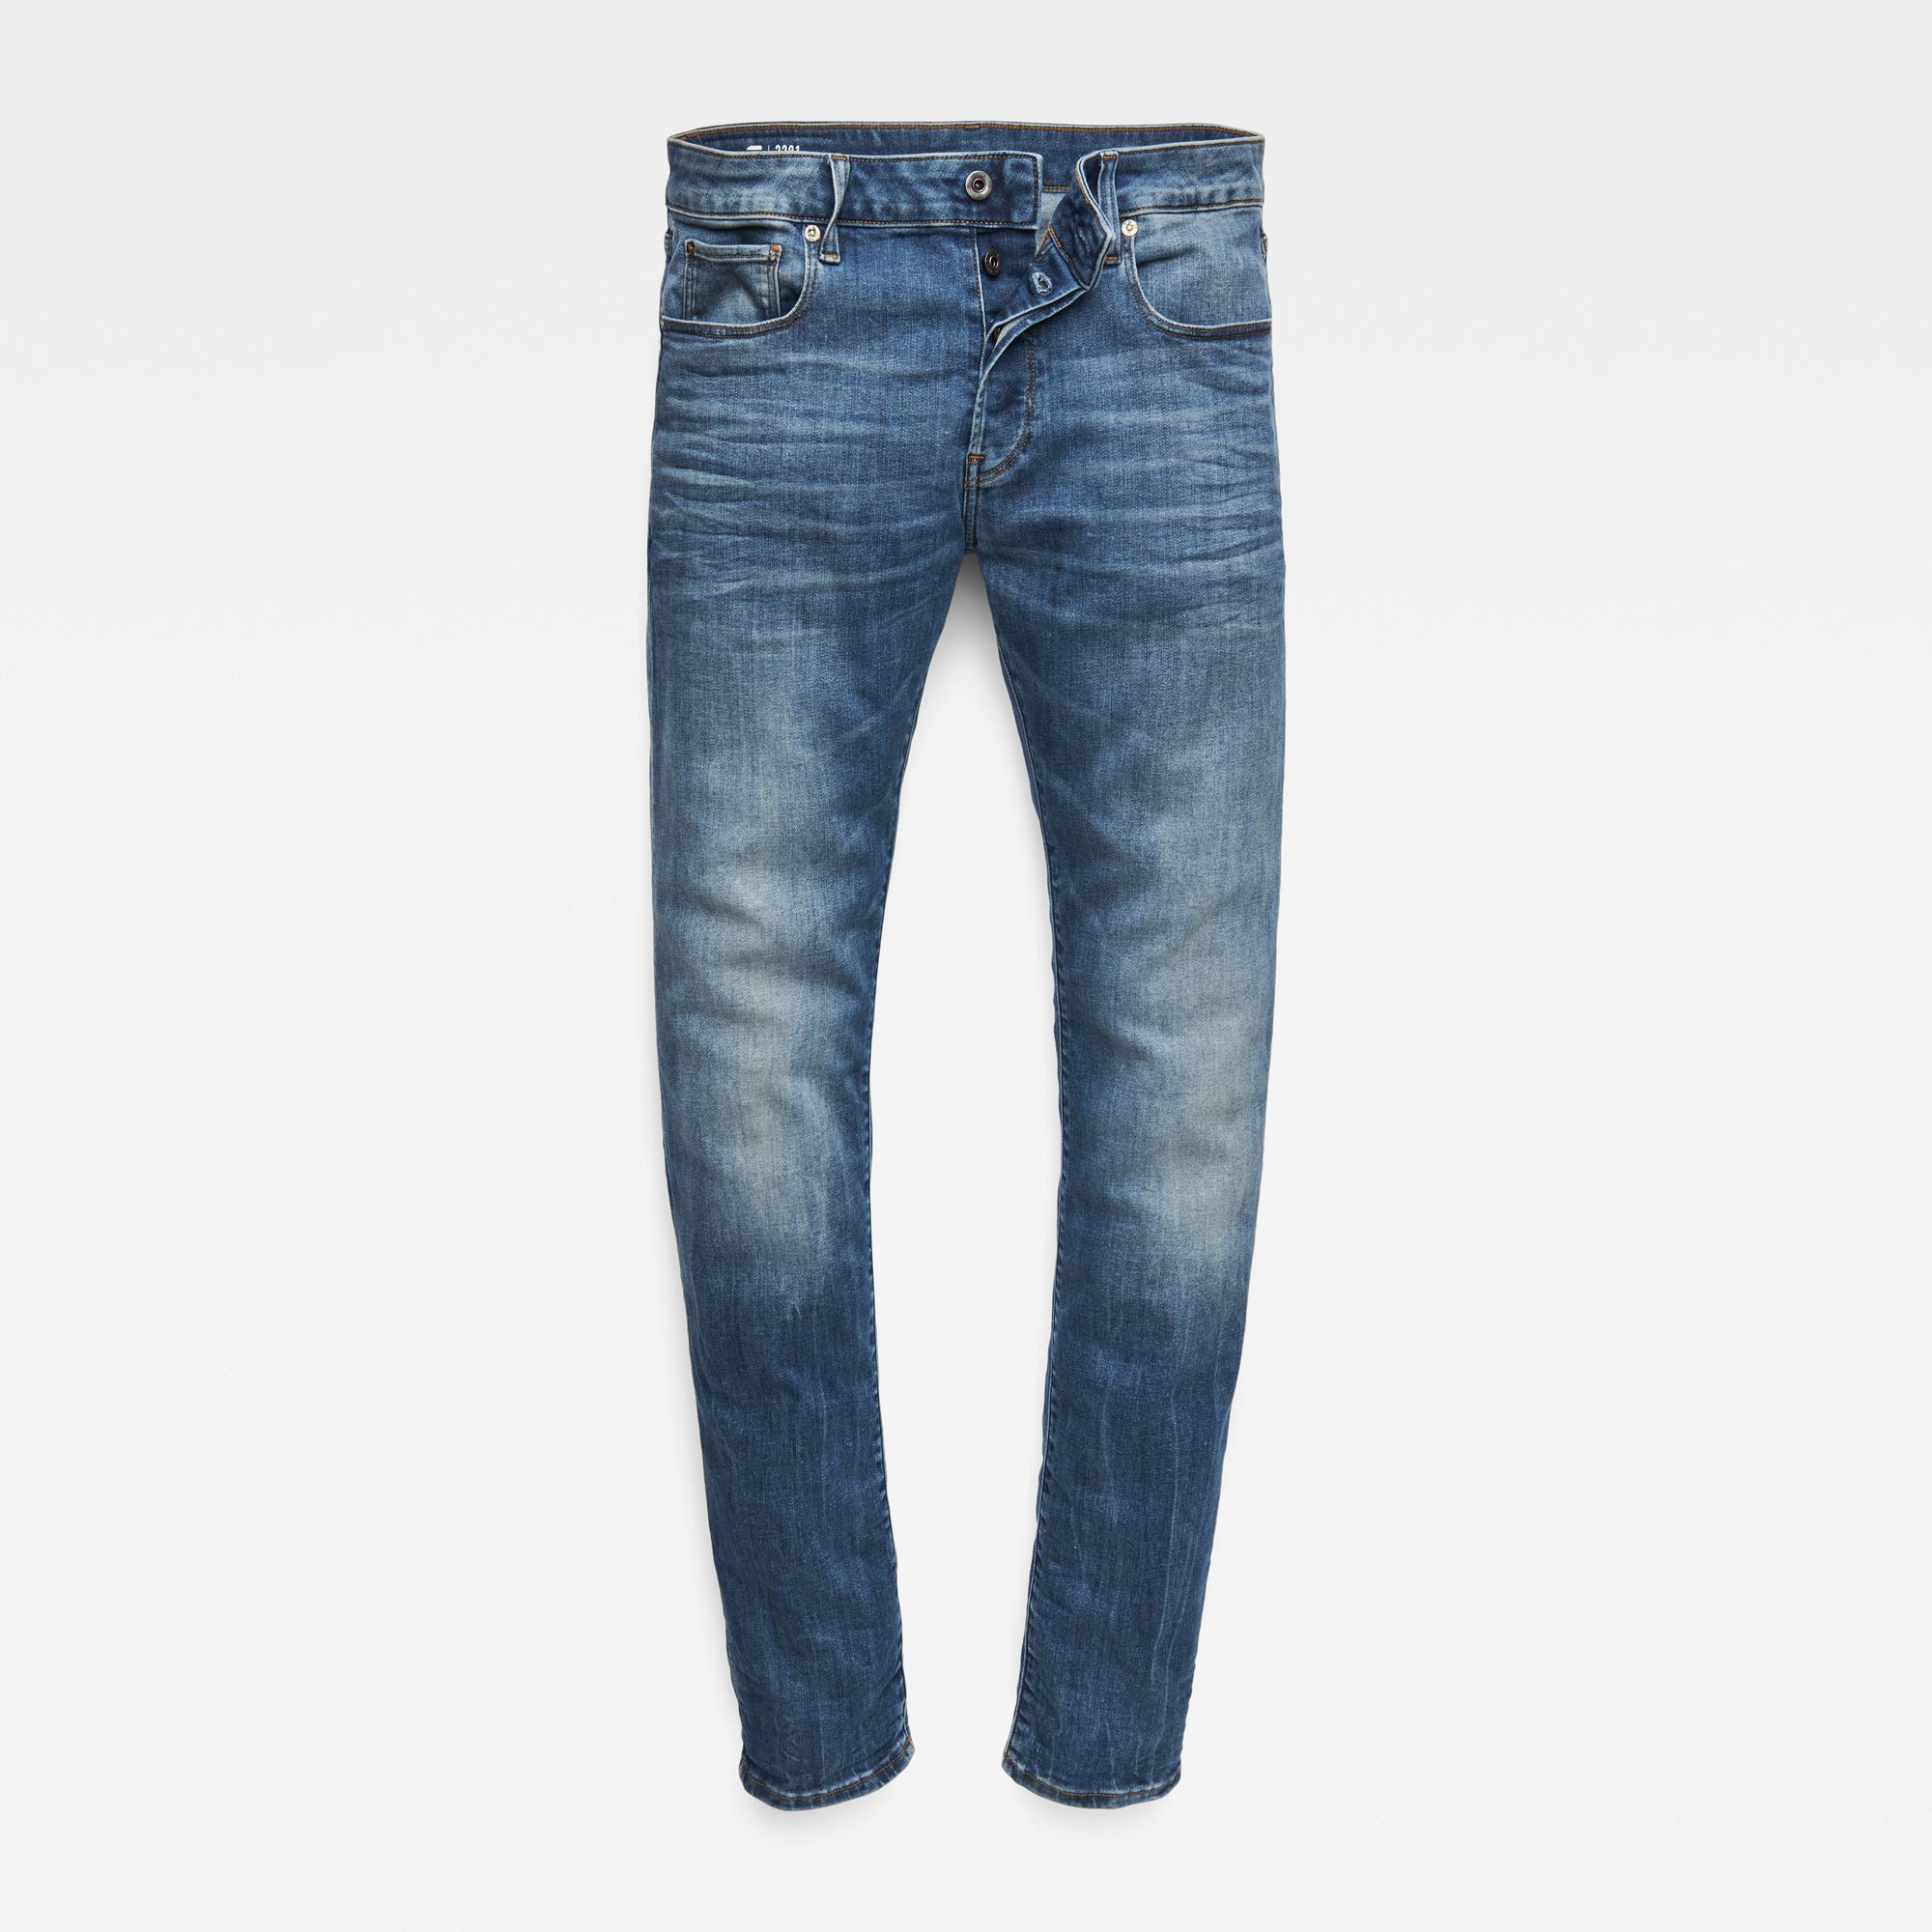 G-Star G-Star 3301 Slim 51001-8968-2965 Blue Washed